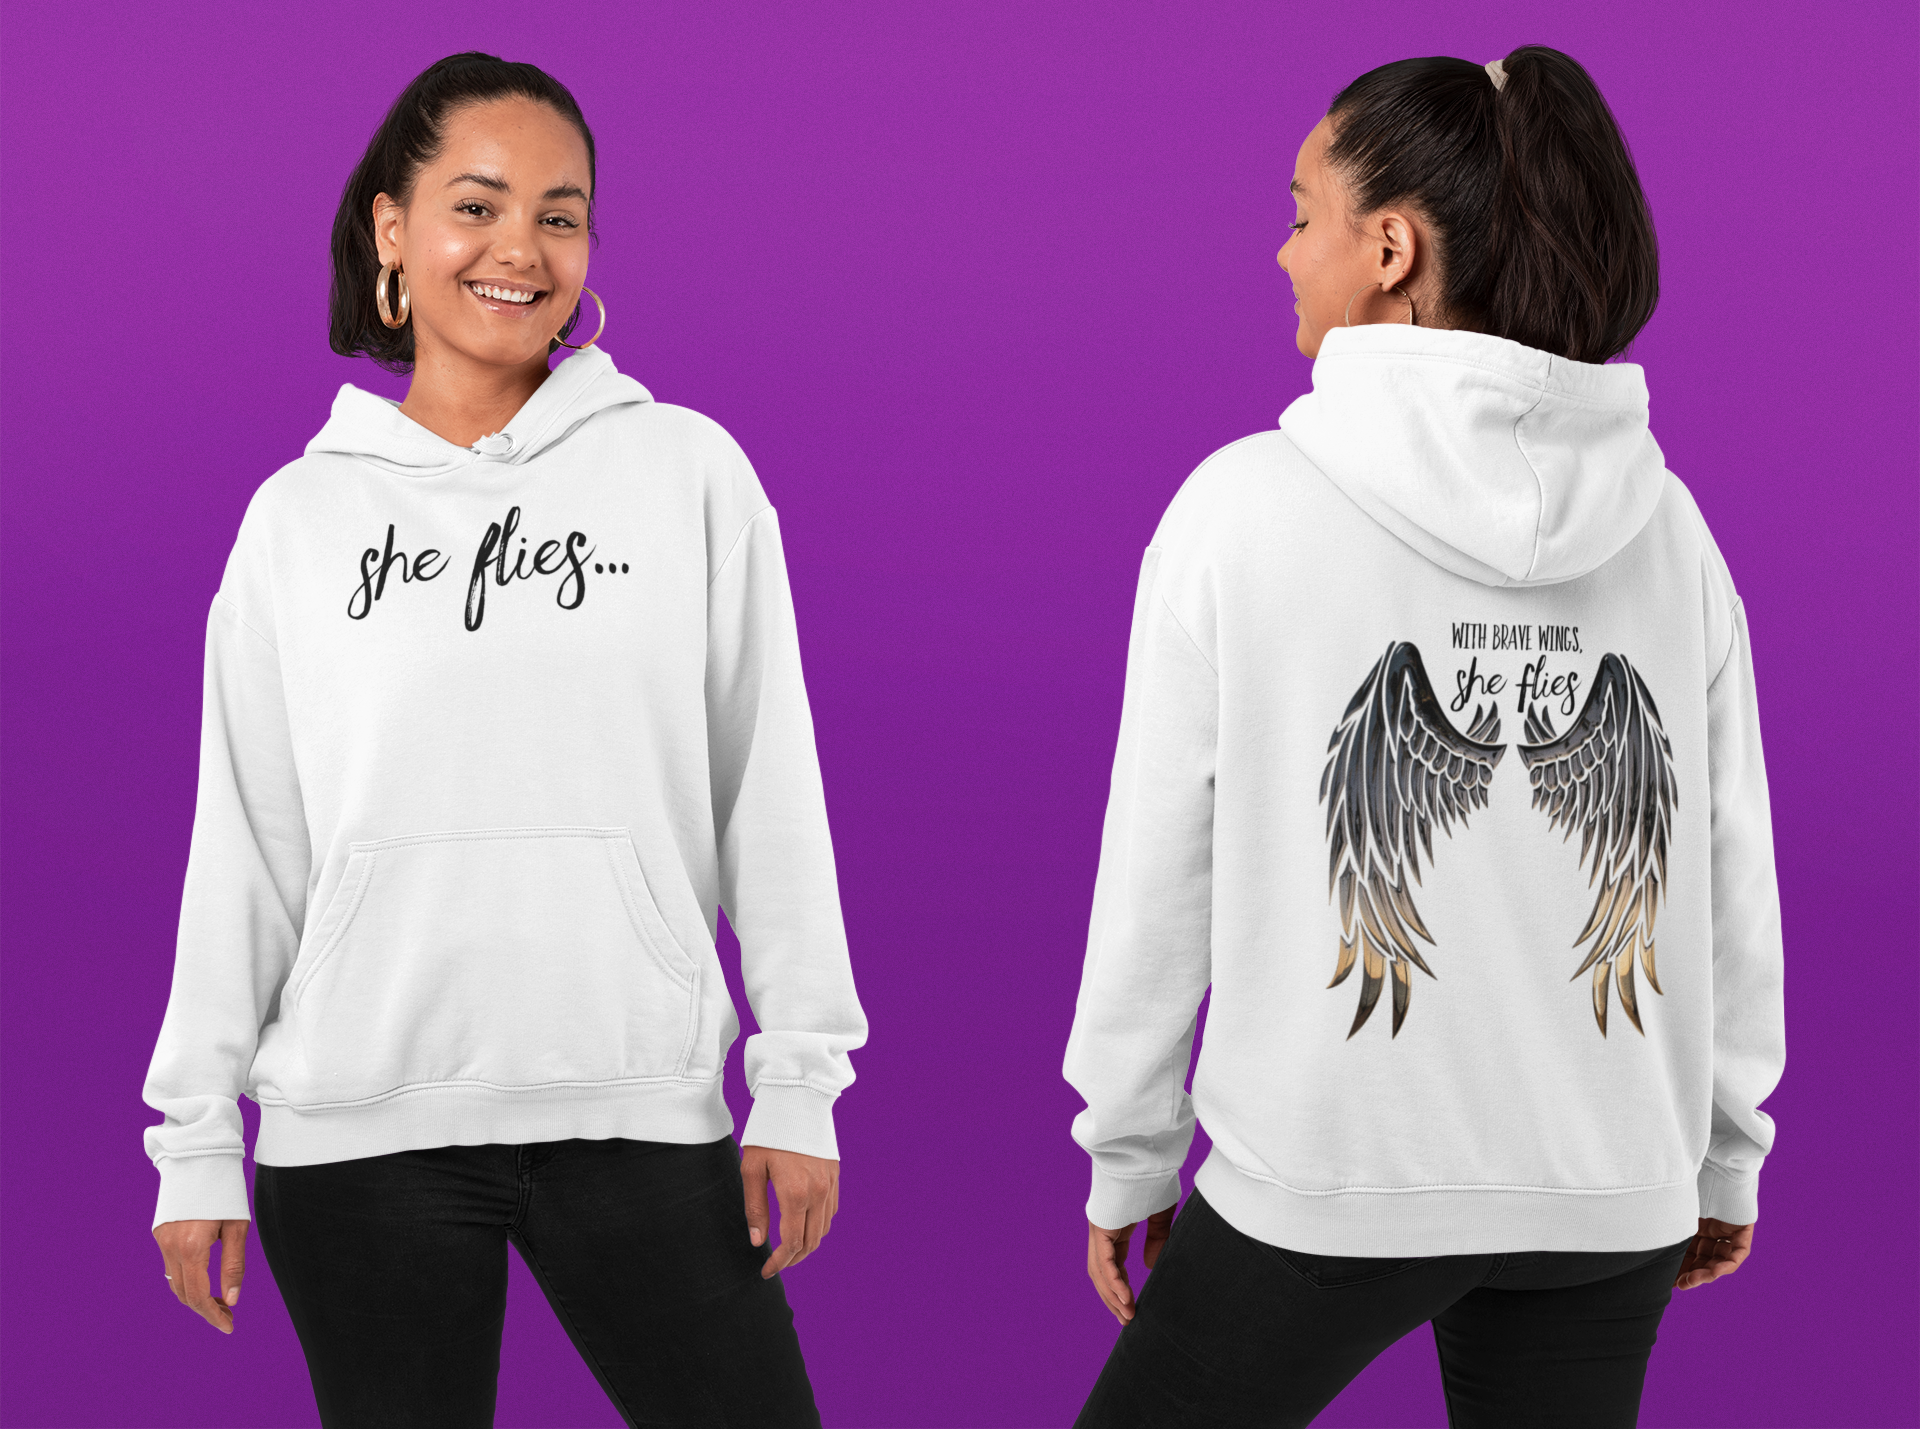 Promo - Wings on hoodie without website.